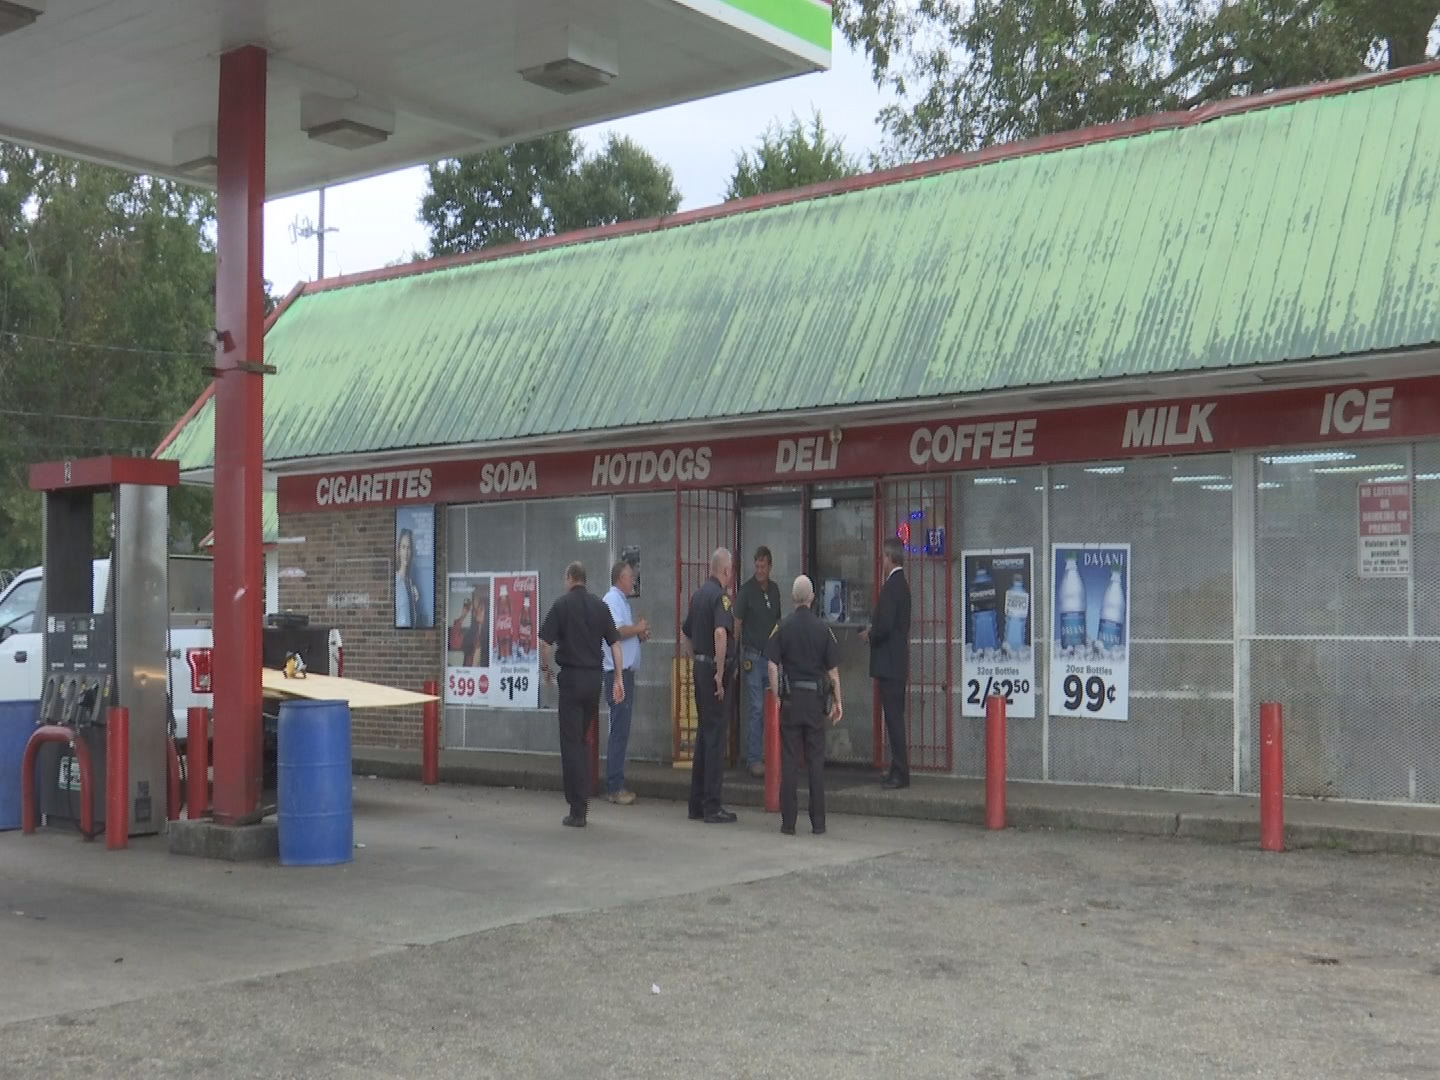 Gas station temporarily closed following investigation on illegal